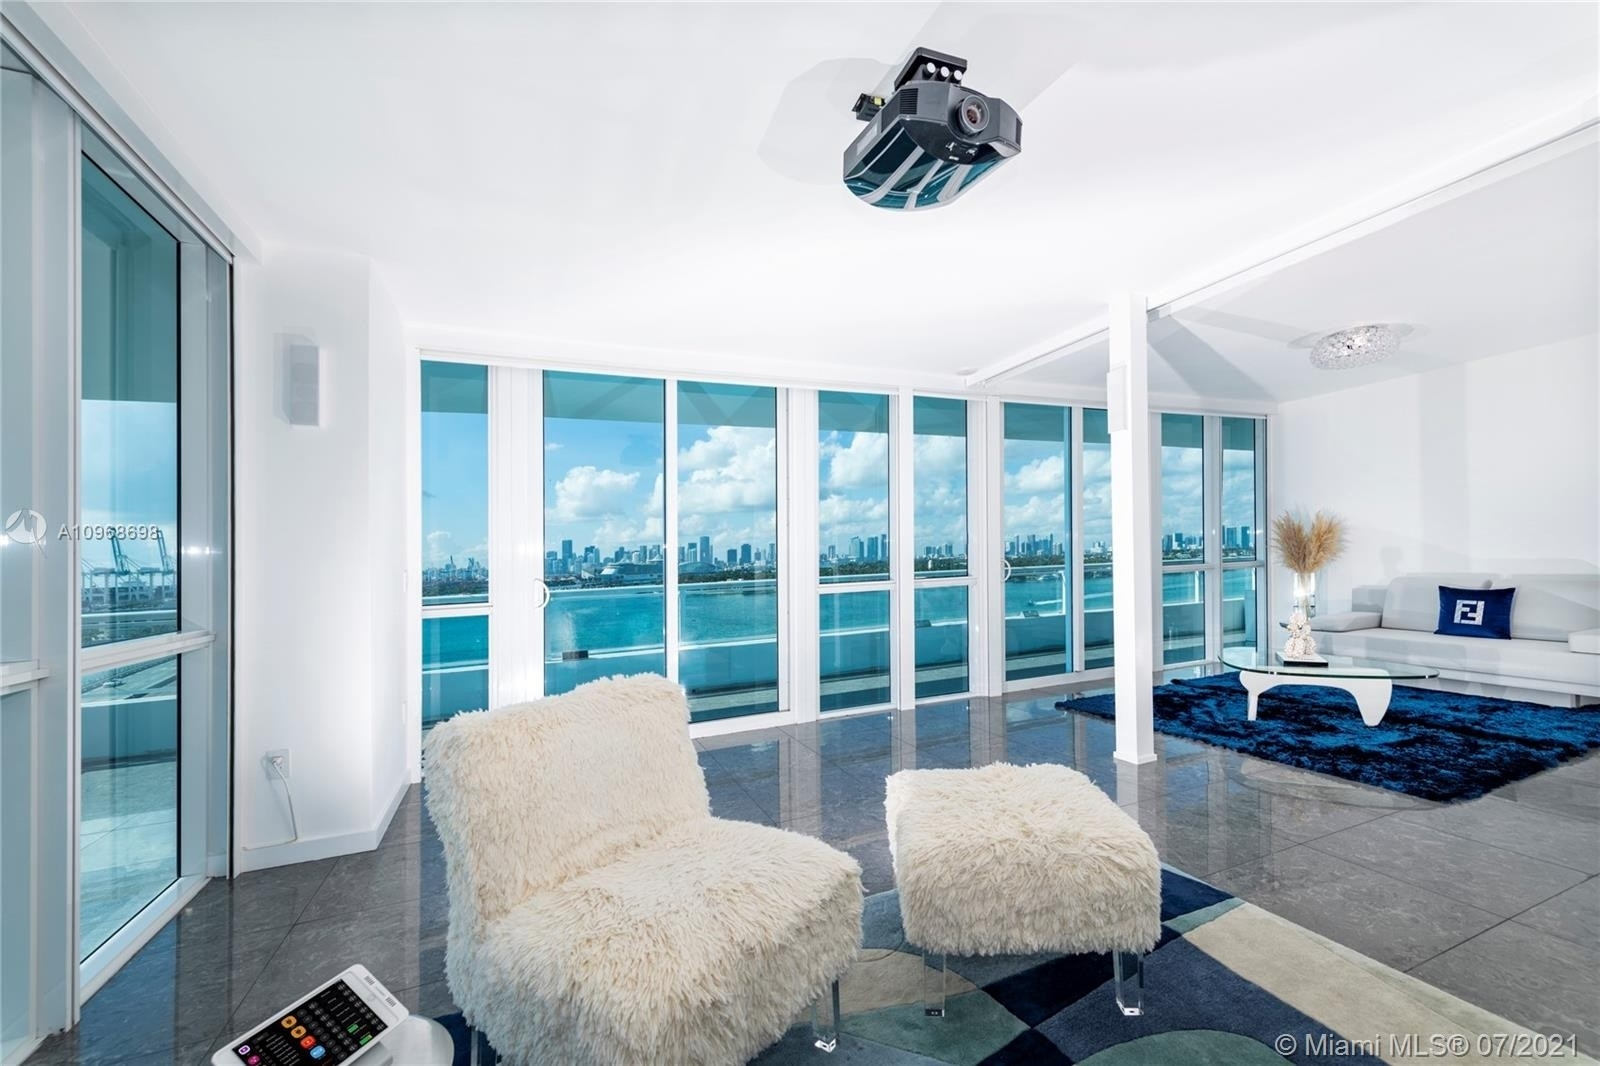 Property в 520 West Ave , 1101 West Avenue, Miami Beach, FL 33139